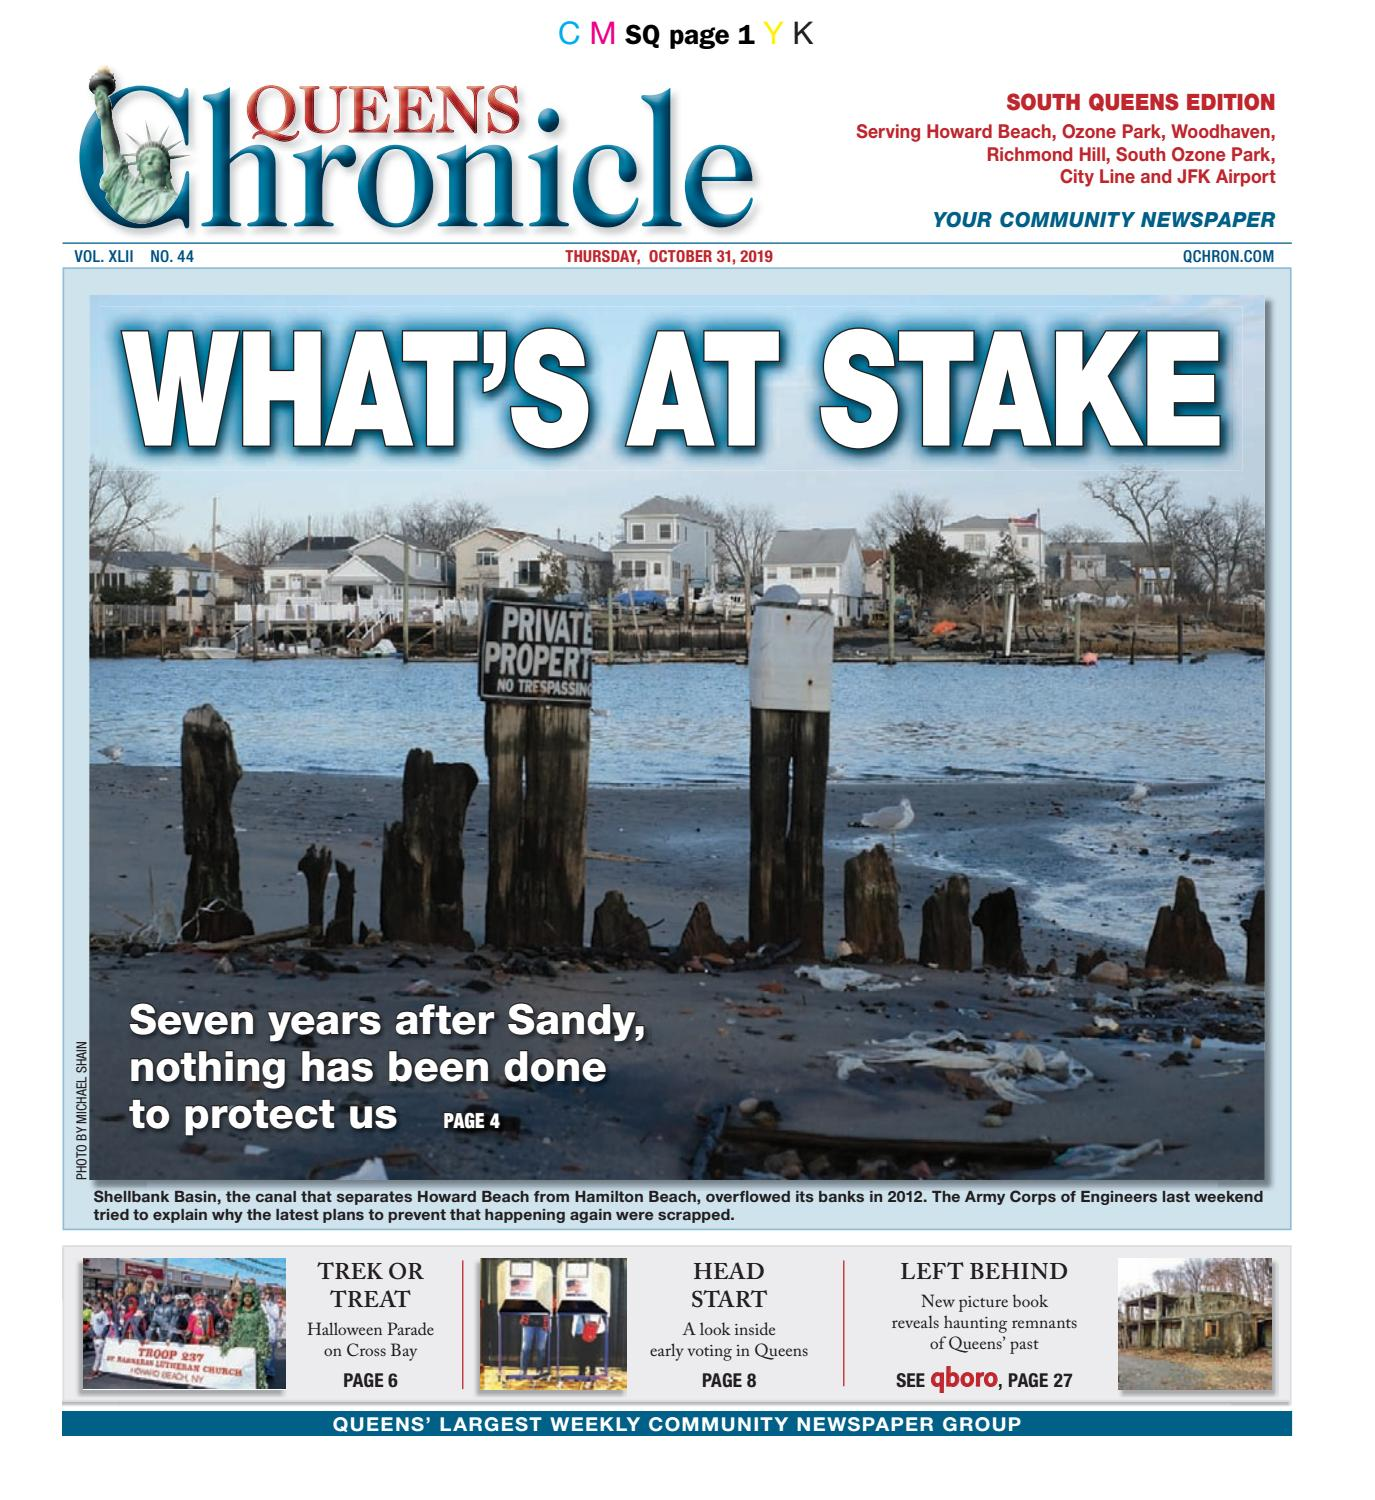 Queens Chronicle South Edition 10 31 19 by Queens Chronicle